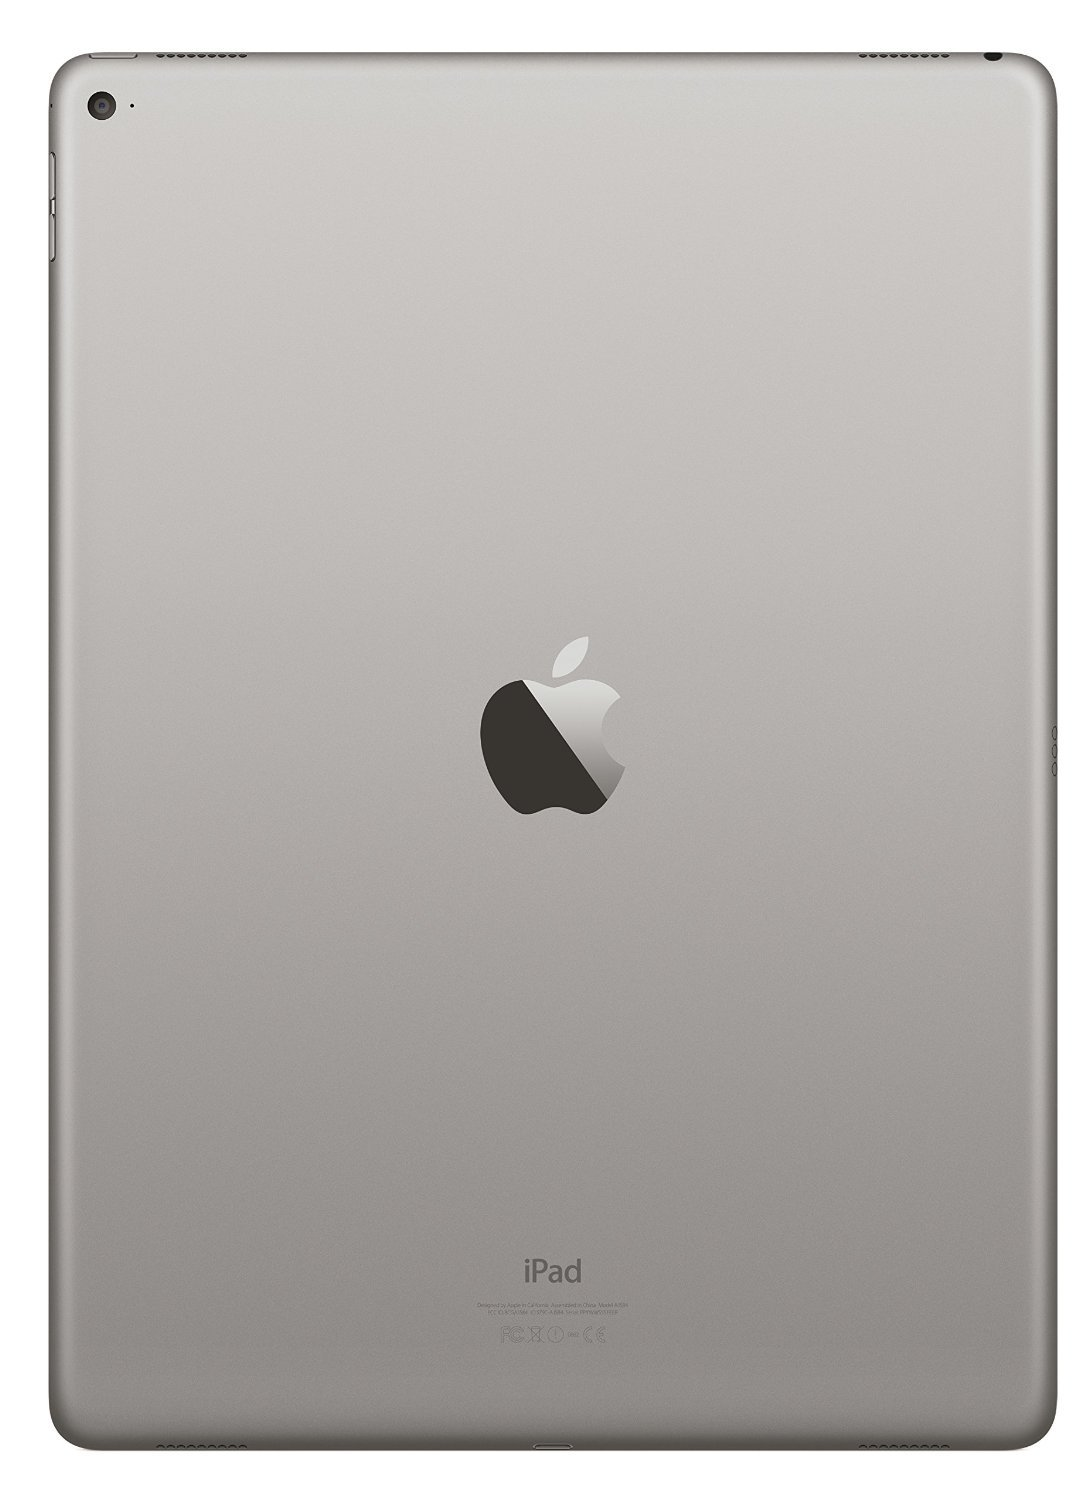 apple 9 7 ipad pro 128gb wi fi only space gray. amazon.com : apple ipad pro (128gb, wi-fi, space gray) 12.9\ 9 7 ipad 128gb wi fi only gray d